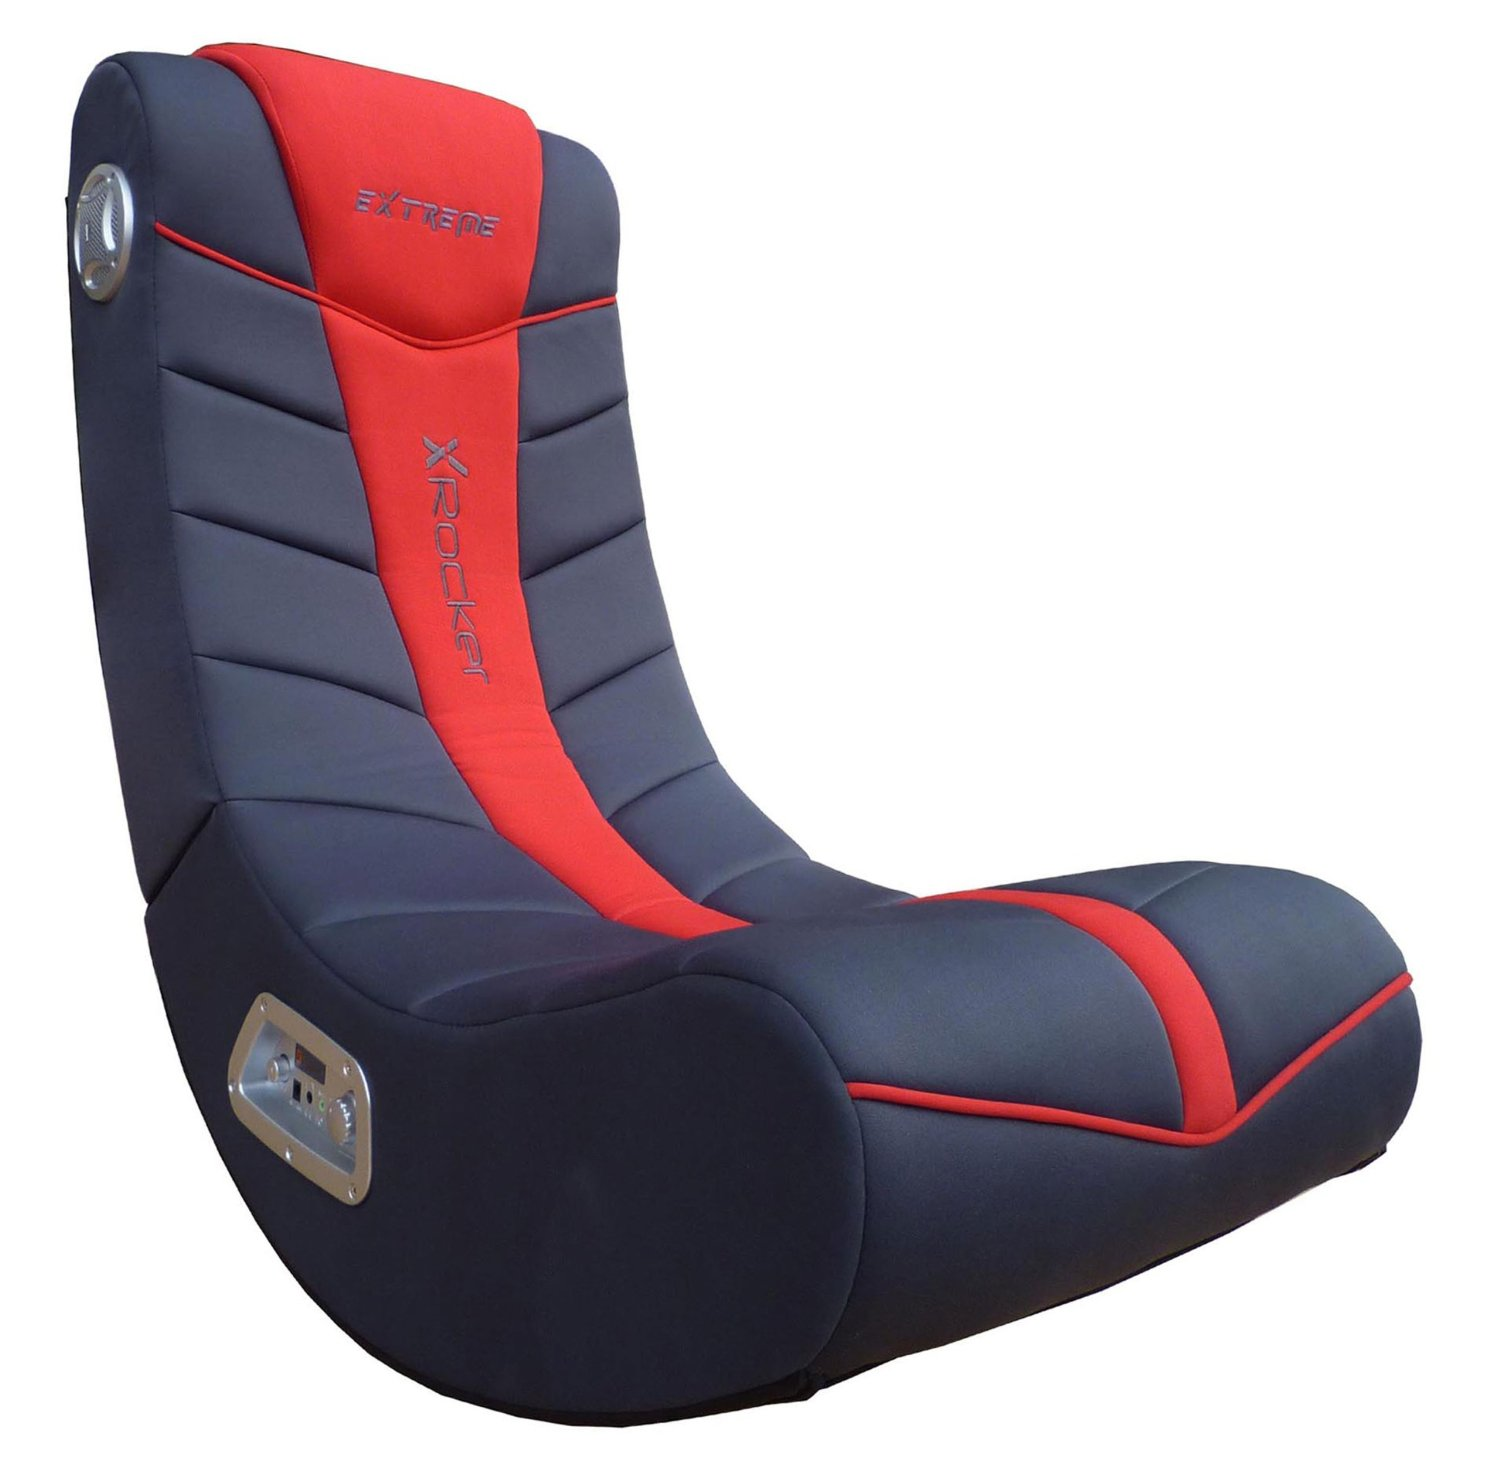 Incroyable Get Quotations · X Rocker 51491 Extreme III 2.0 Gaming Rocker Chair With  Audio System